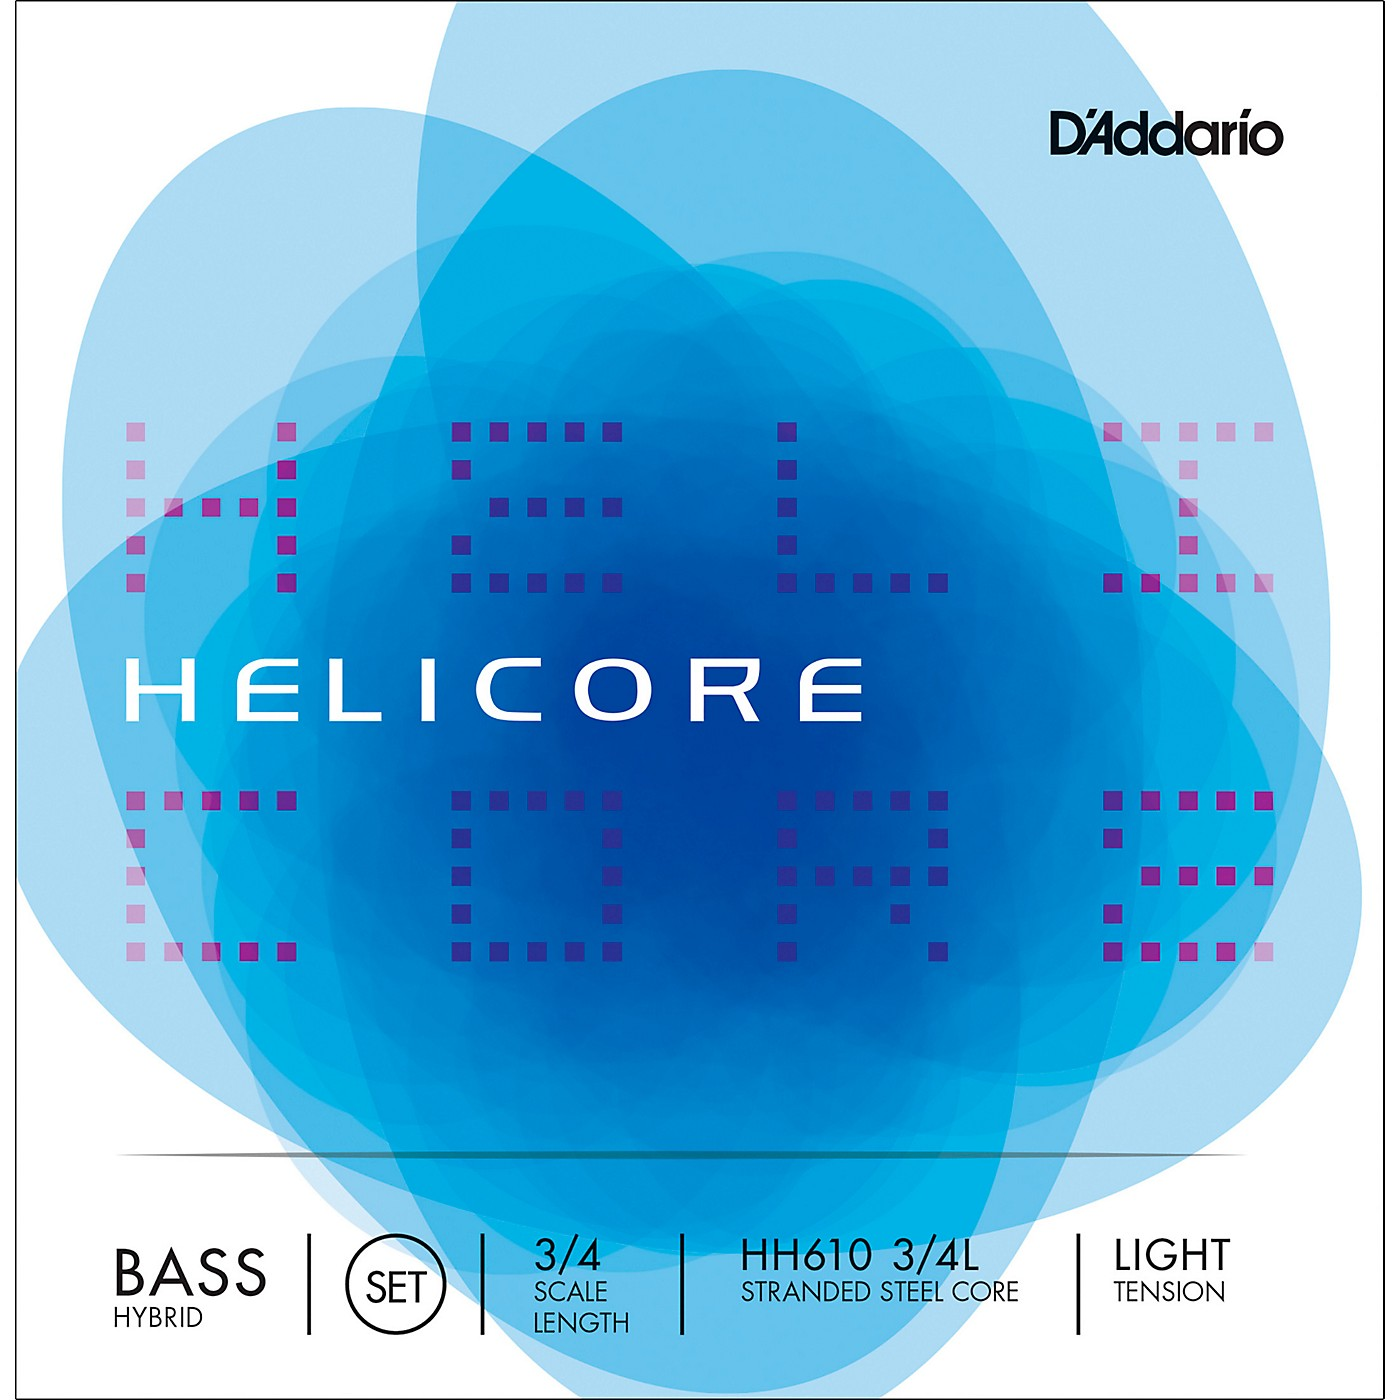 D'Addario Helicore Hybrid Series Double Bass String Set thumbnail